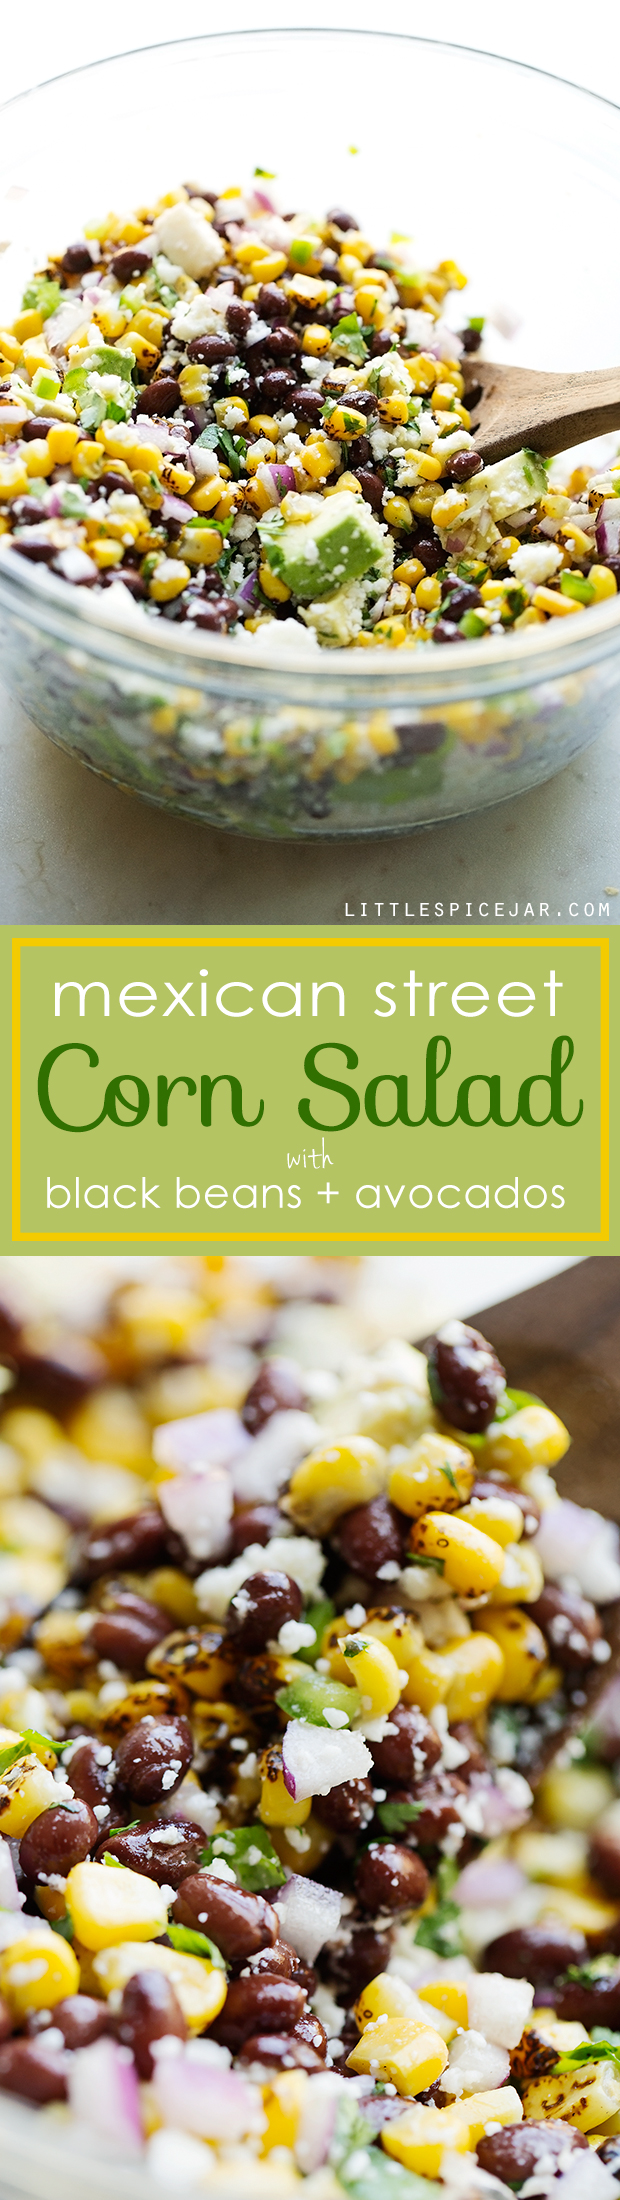 Mexican-Street-Corn-Salad-with-Black-Beans-and-Avocados-5